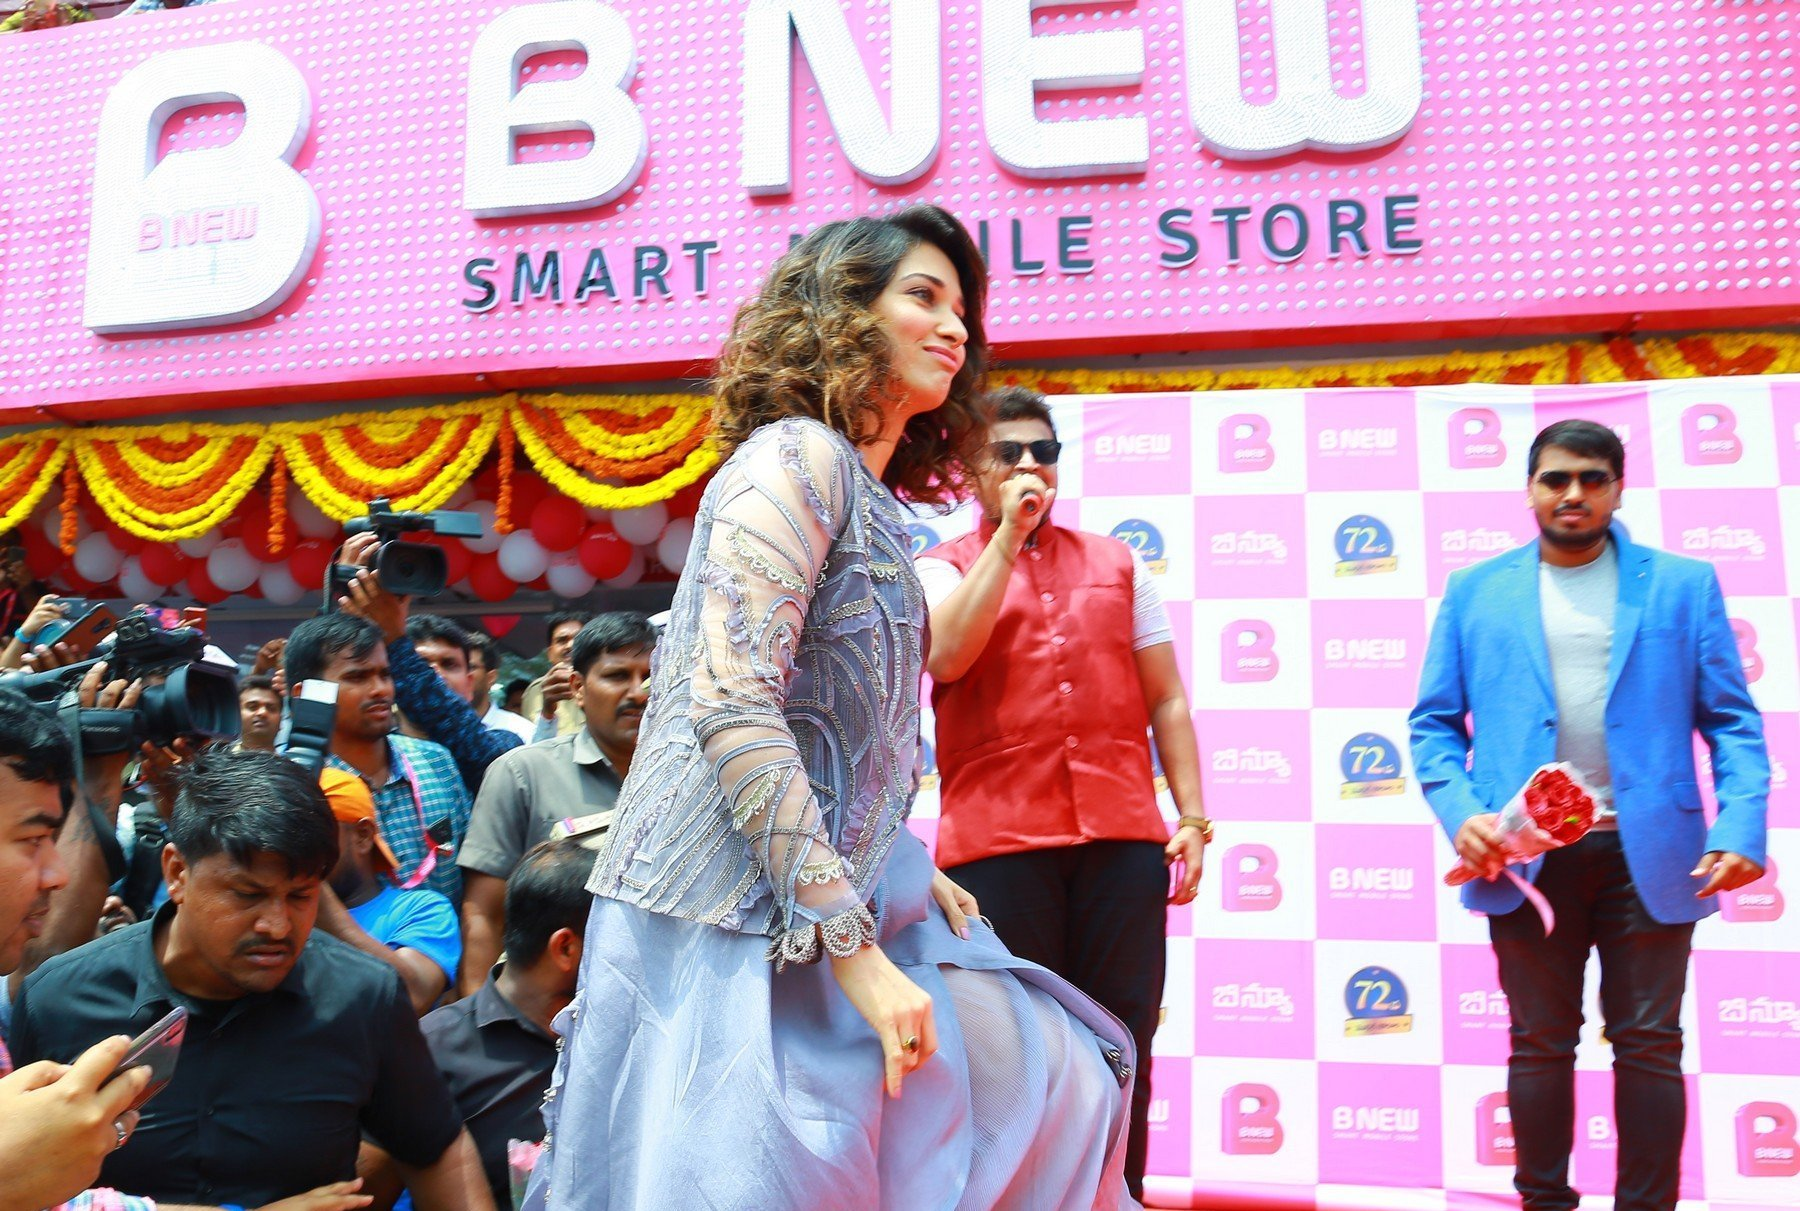 Tamannaah Bhatia Launches B New Mobile Store At Karim Nager Set 3